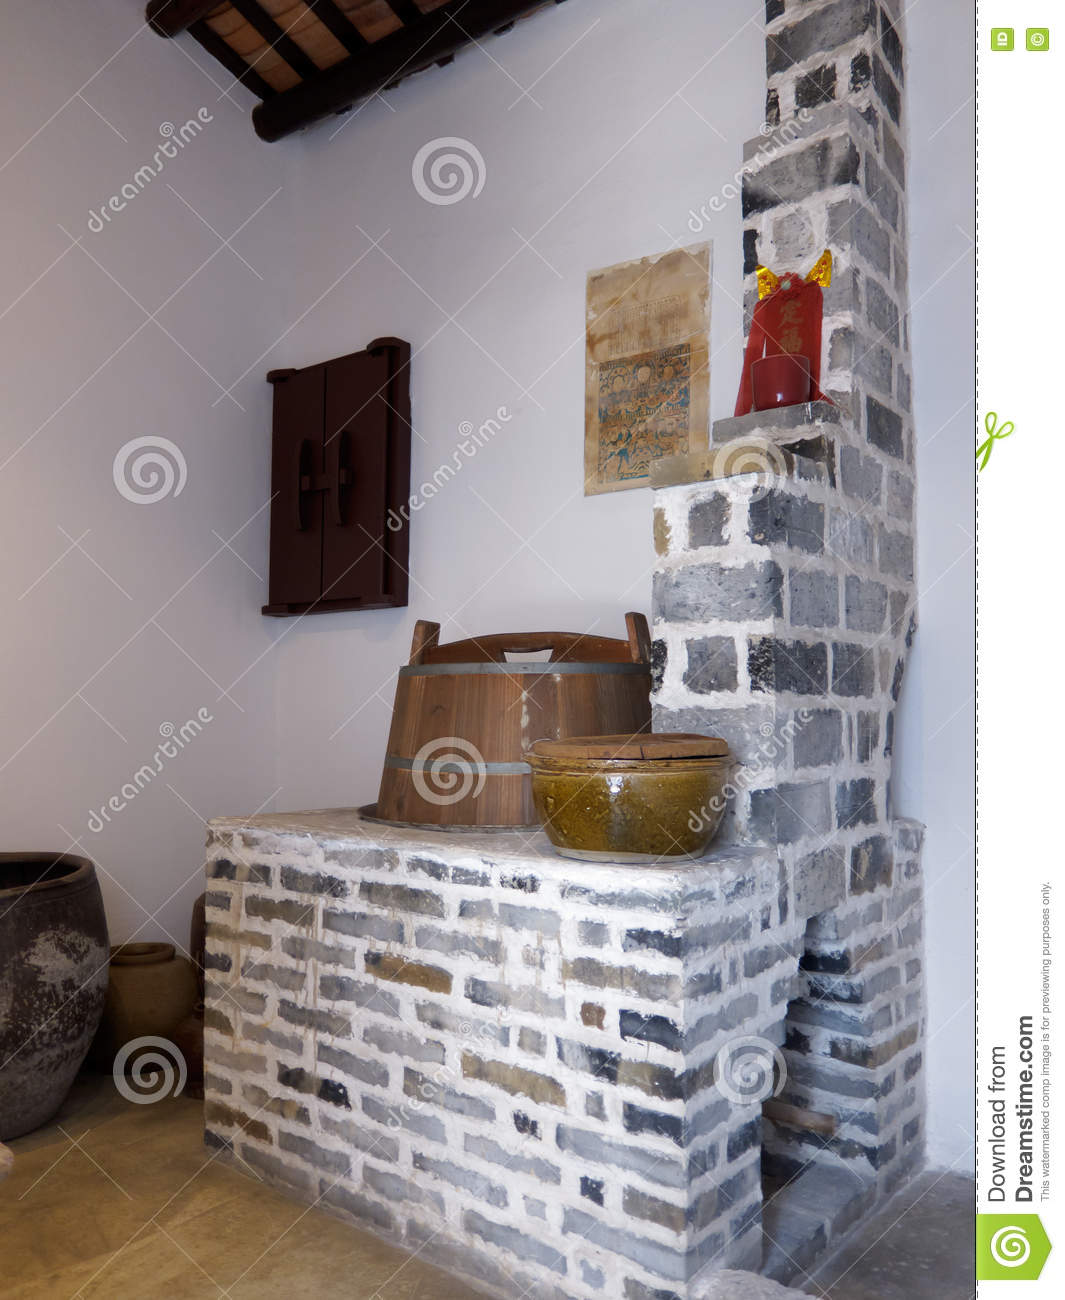 Old Chinese Kitchen Stock Image. Image Of Architecture